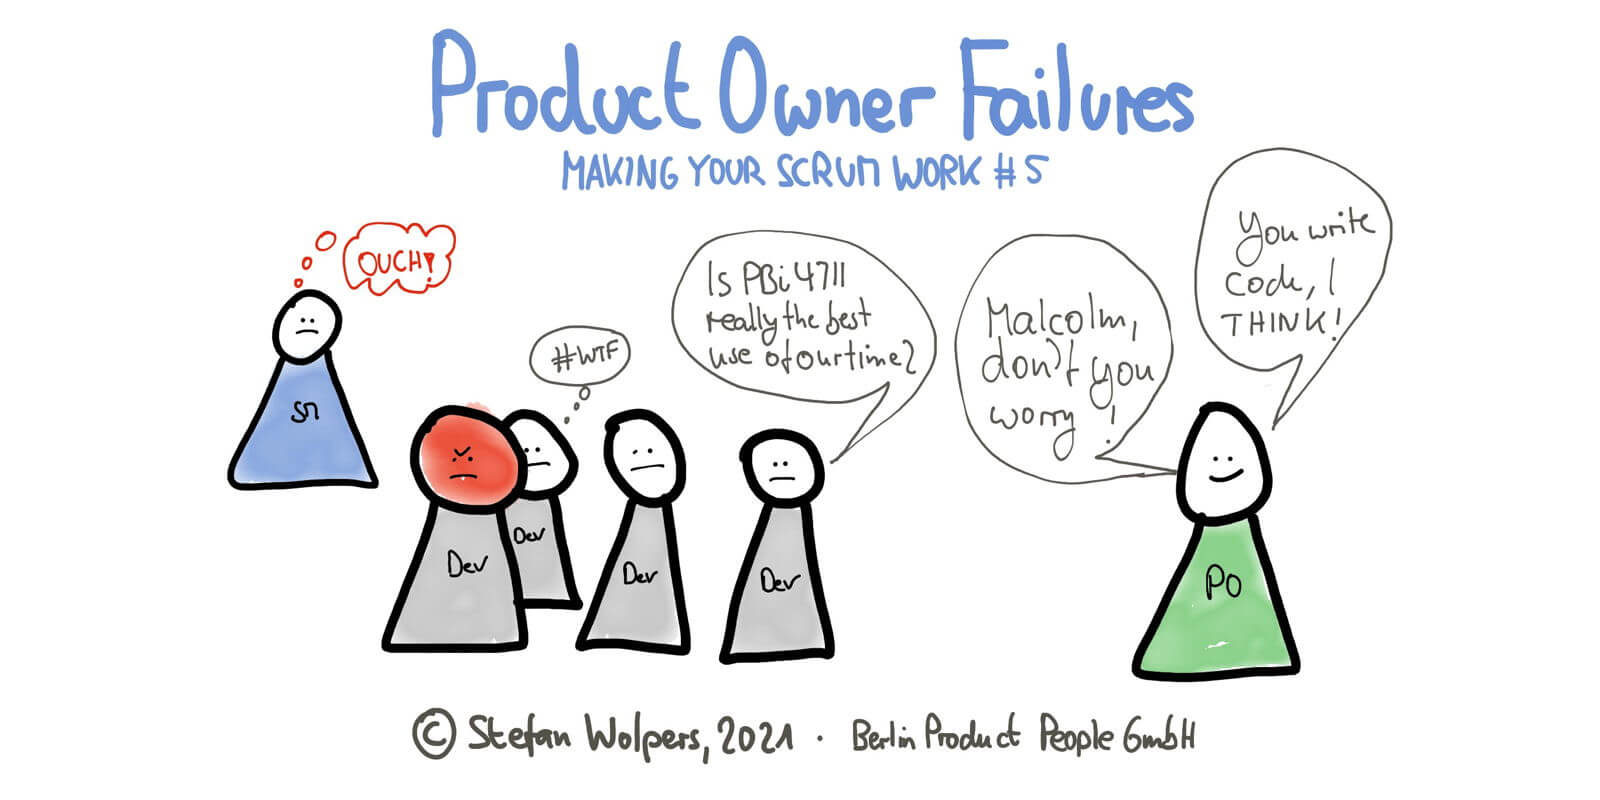 Three Wide-Spread Product Owner Failures in 6:09 Minutes—Making Your Scrum Work #5